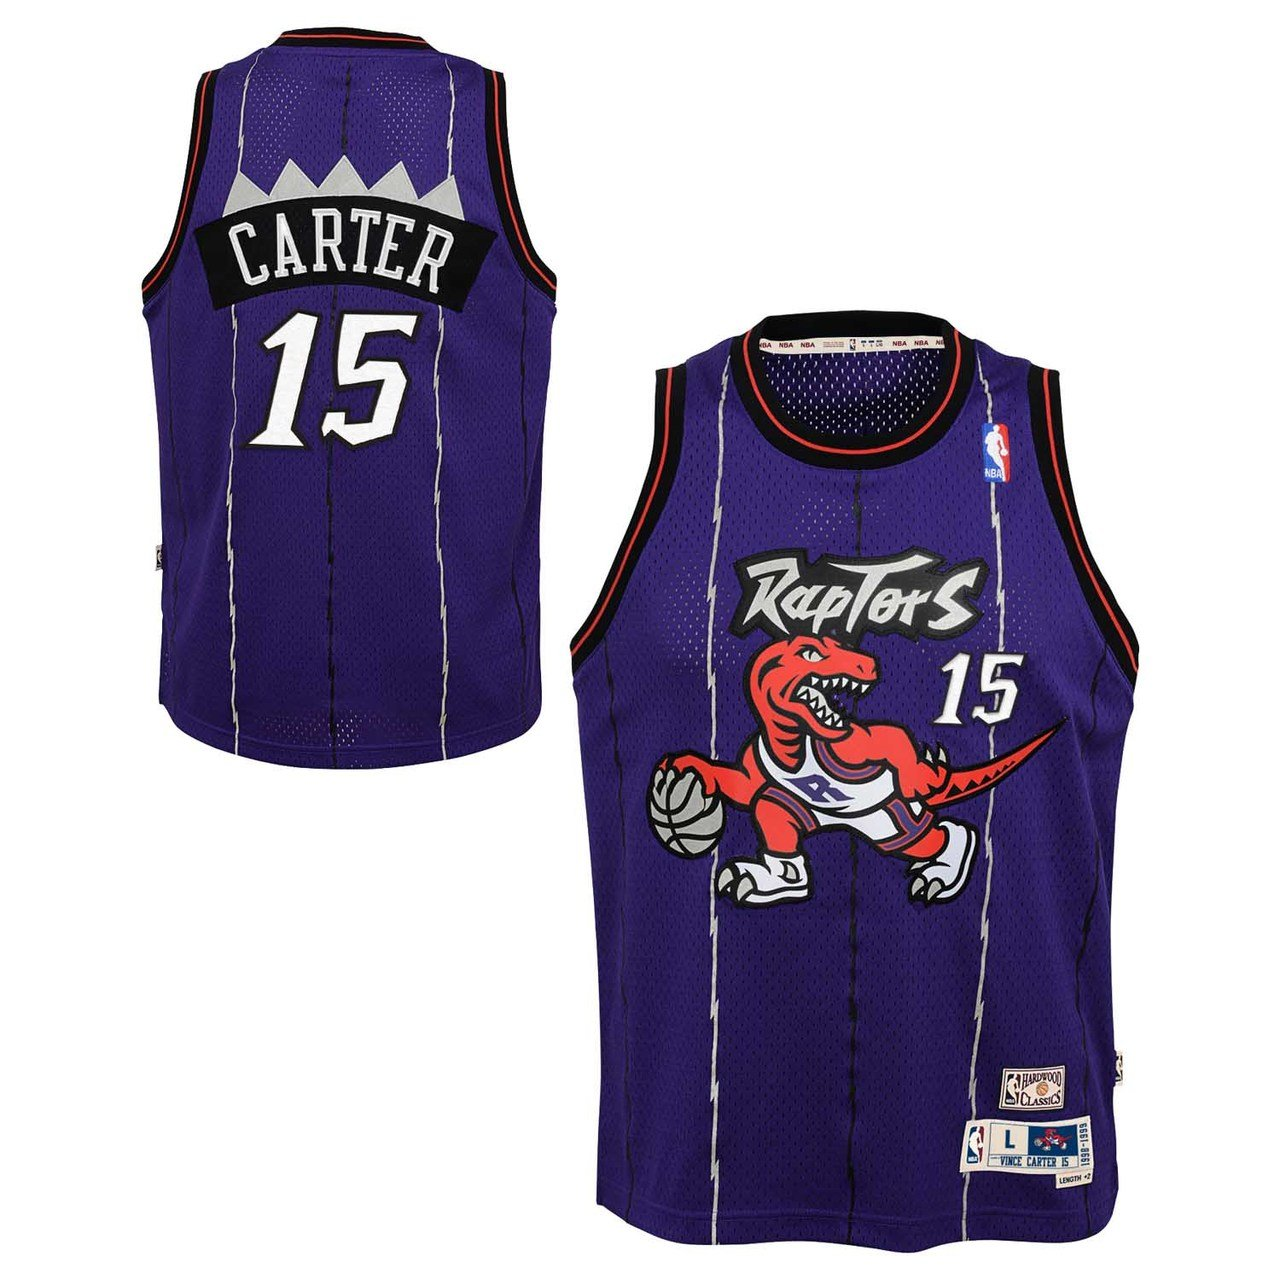 info for ad239 58557 Outerstuff Vince Carter Toronto Raptors NBA Youth Throwback 1998-99  Swingman Jersey